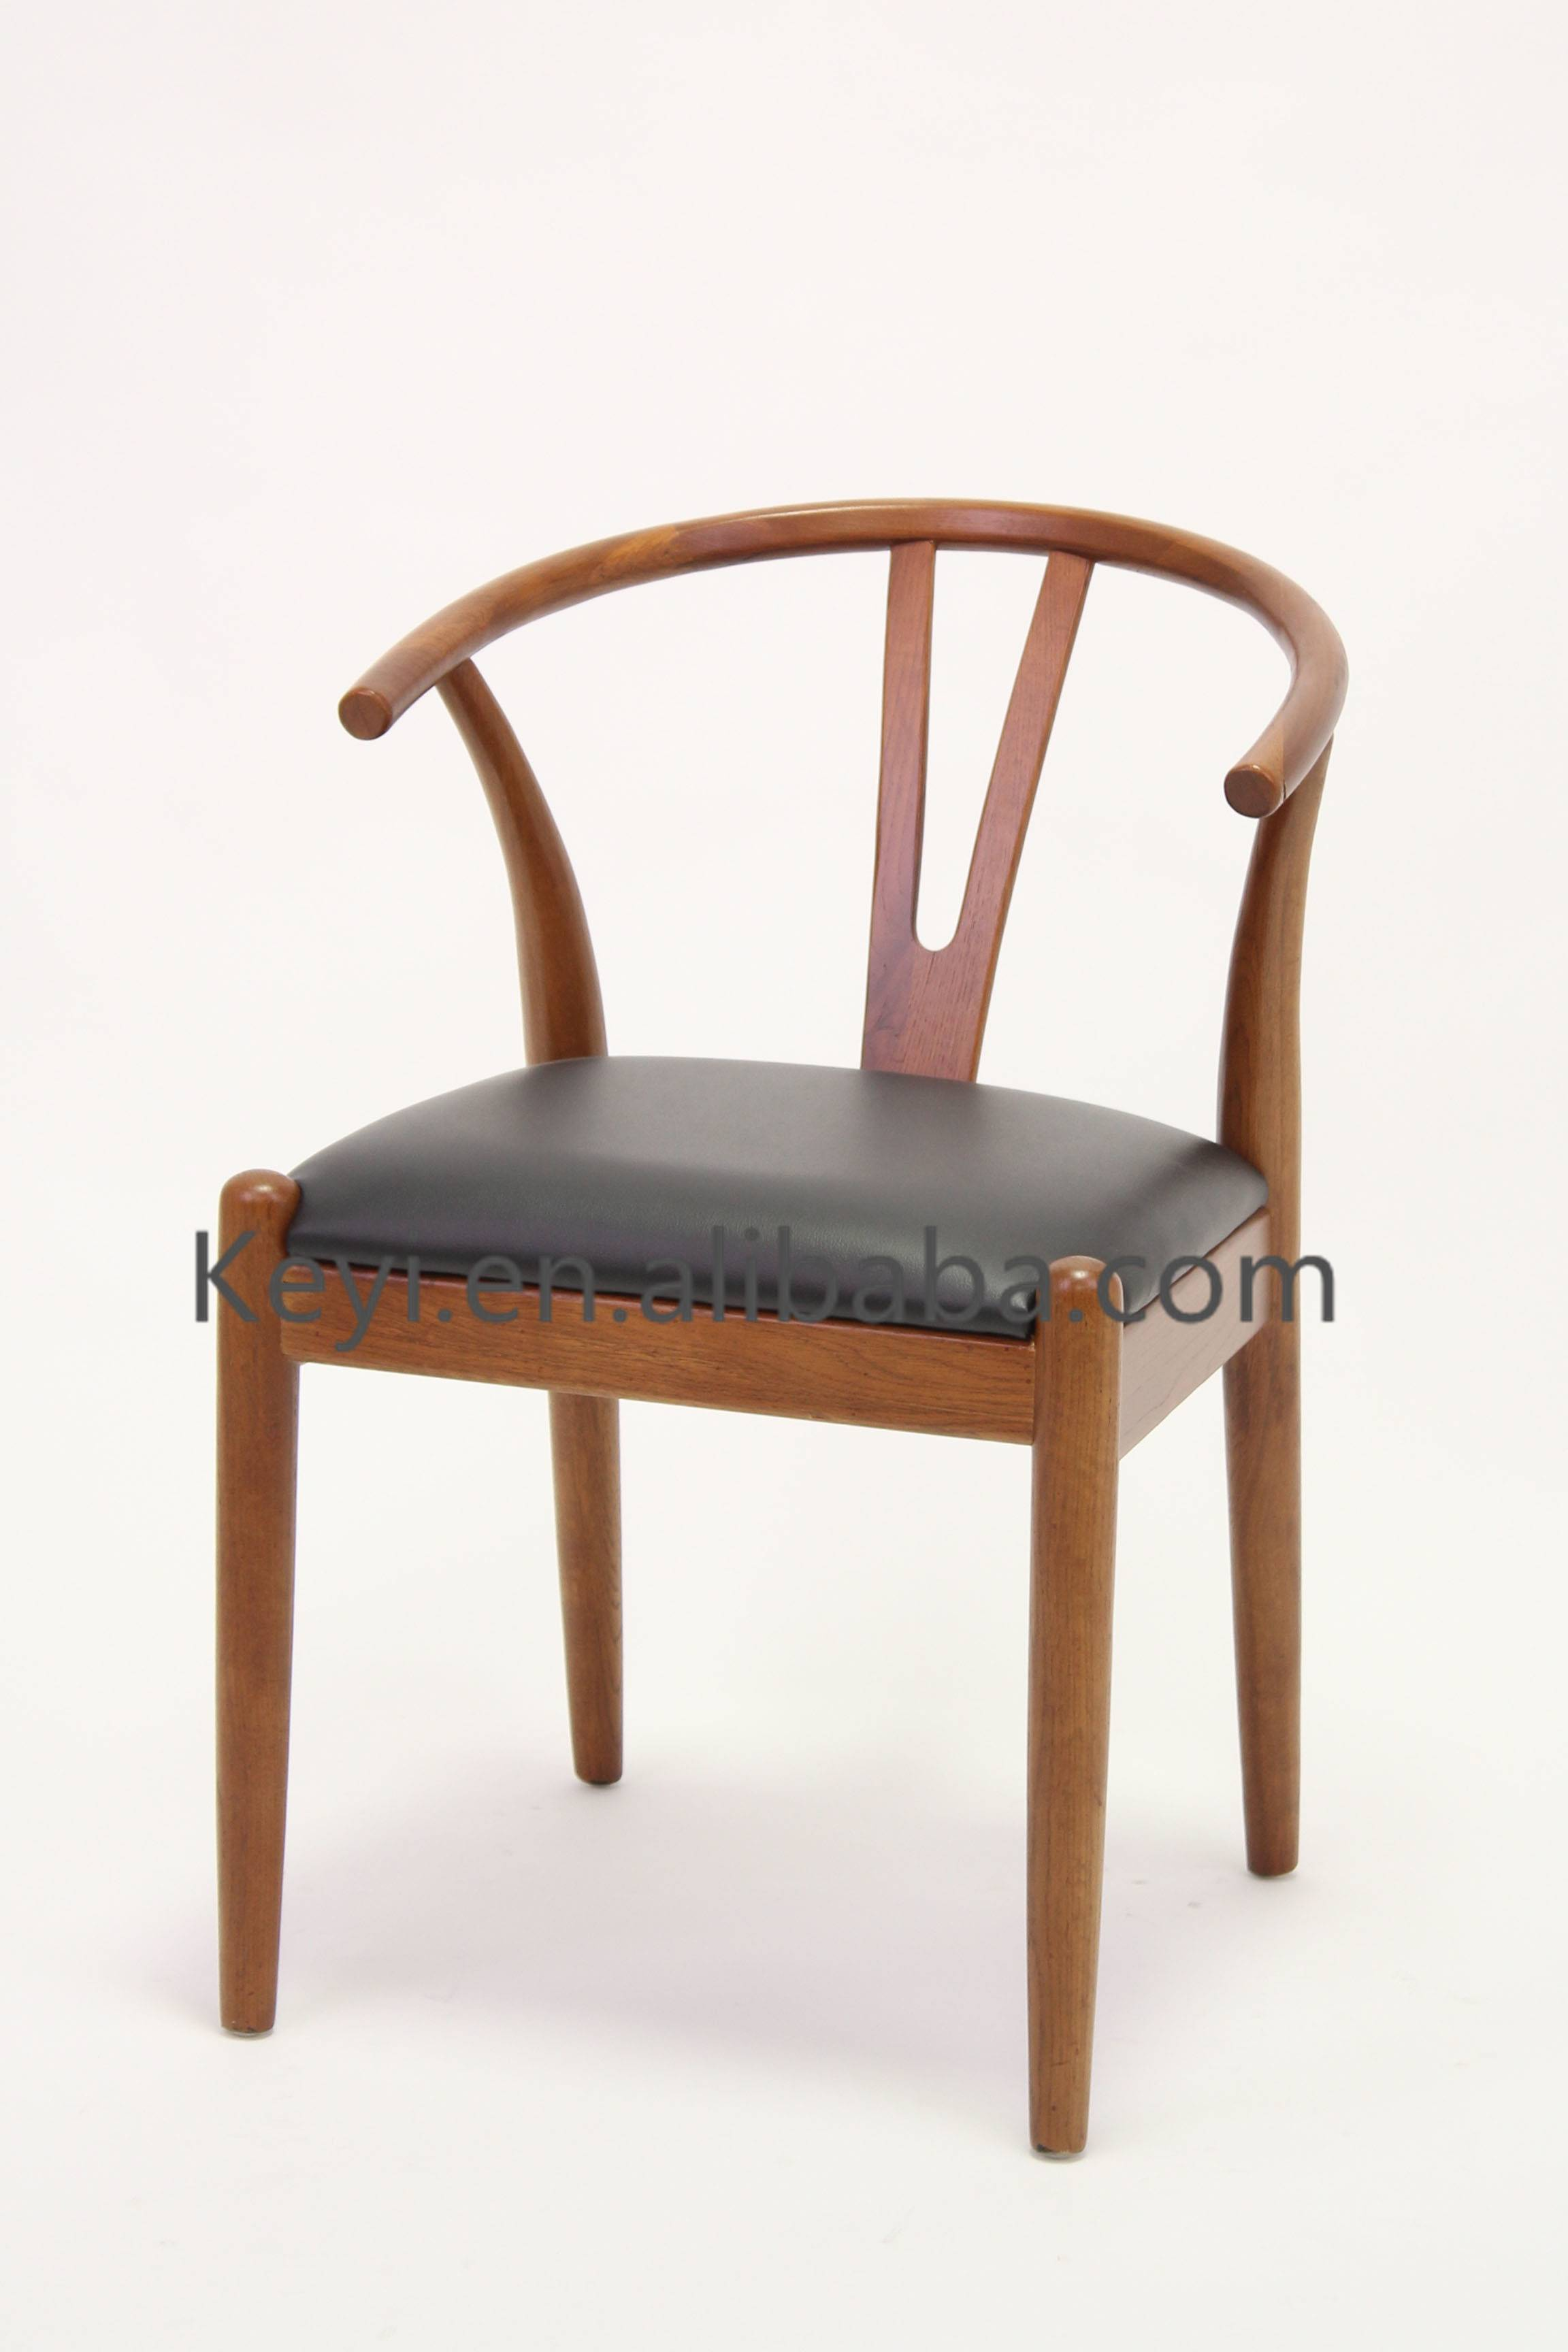 Classic Style PU seat Seat Wooden Y Chair/Wishbone Chair(CH-825-OAK)